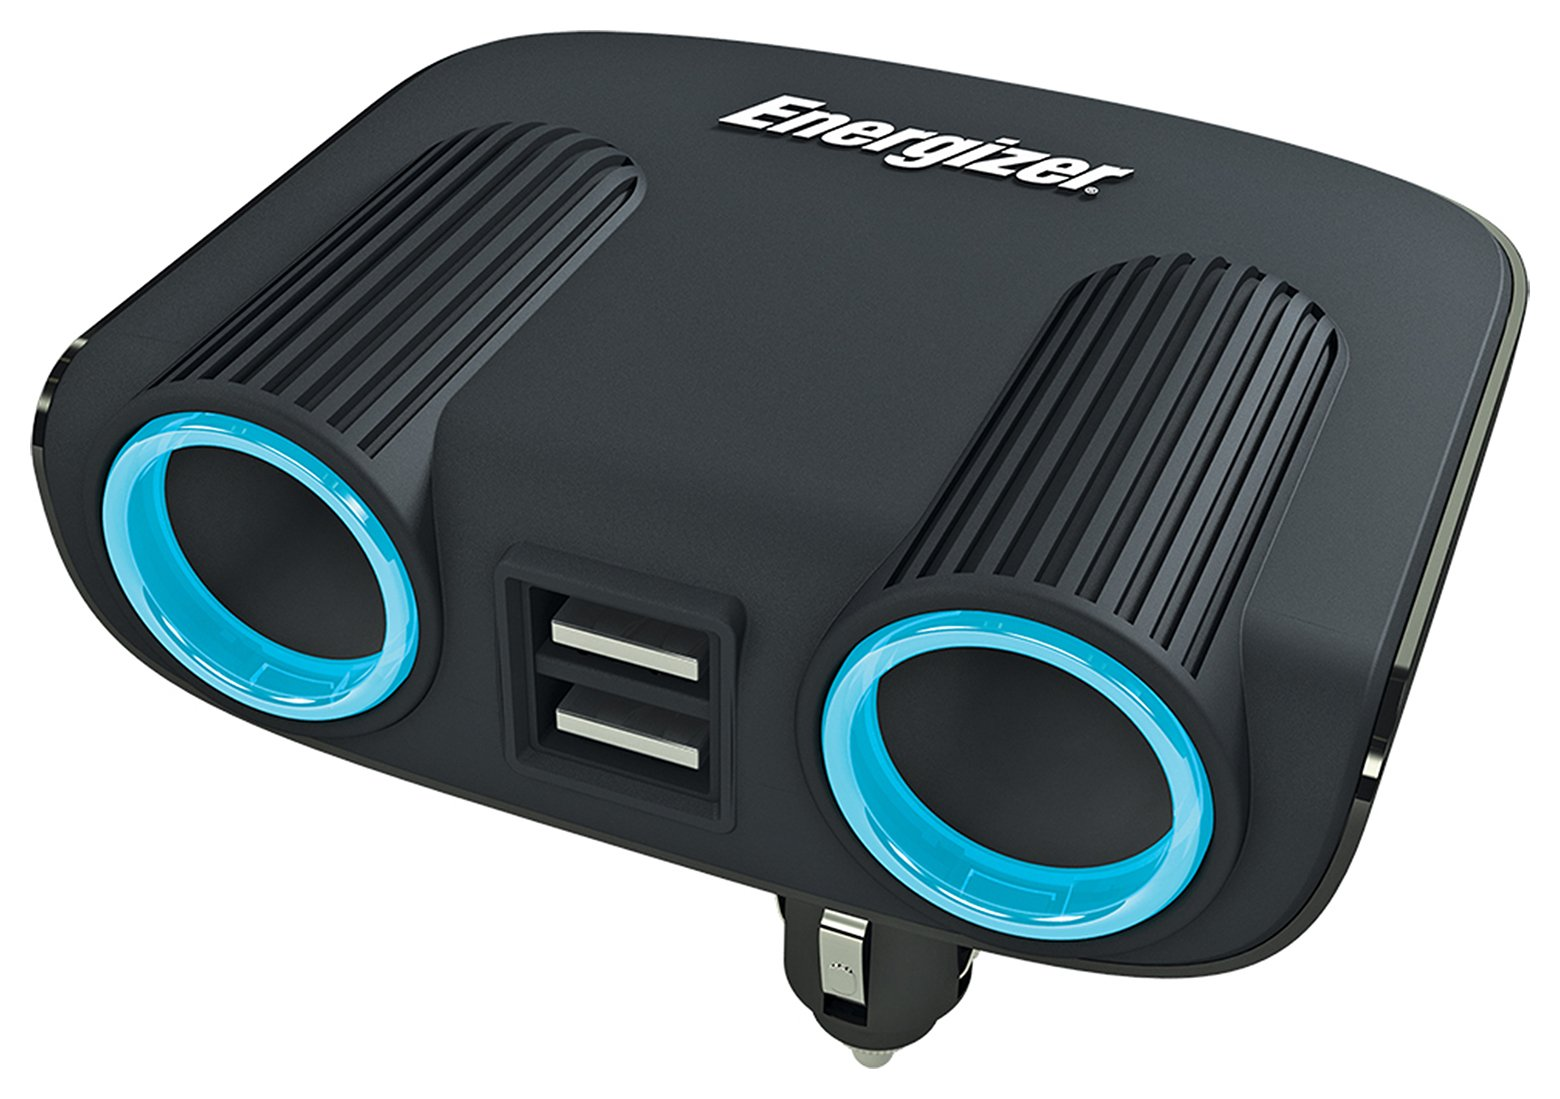 Energizer 12V Twin Socket and Twin USB Adapter.